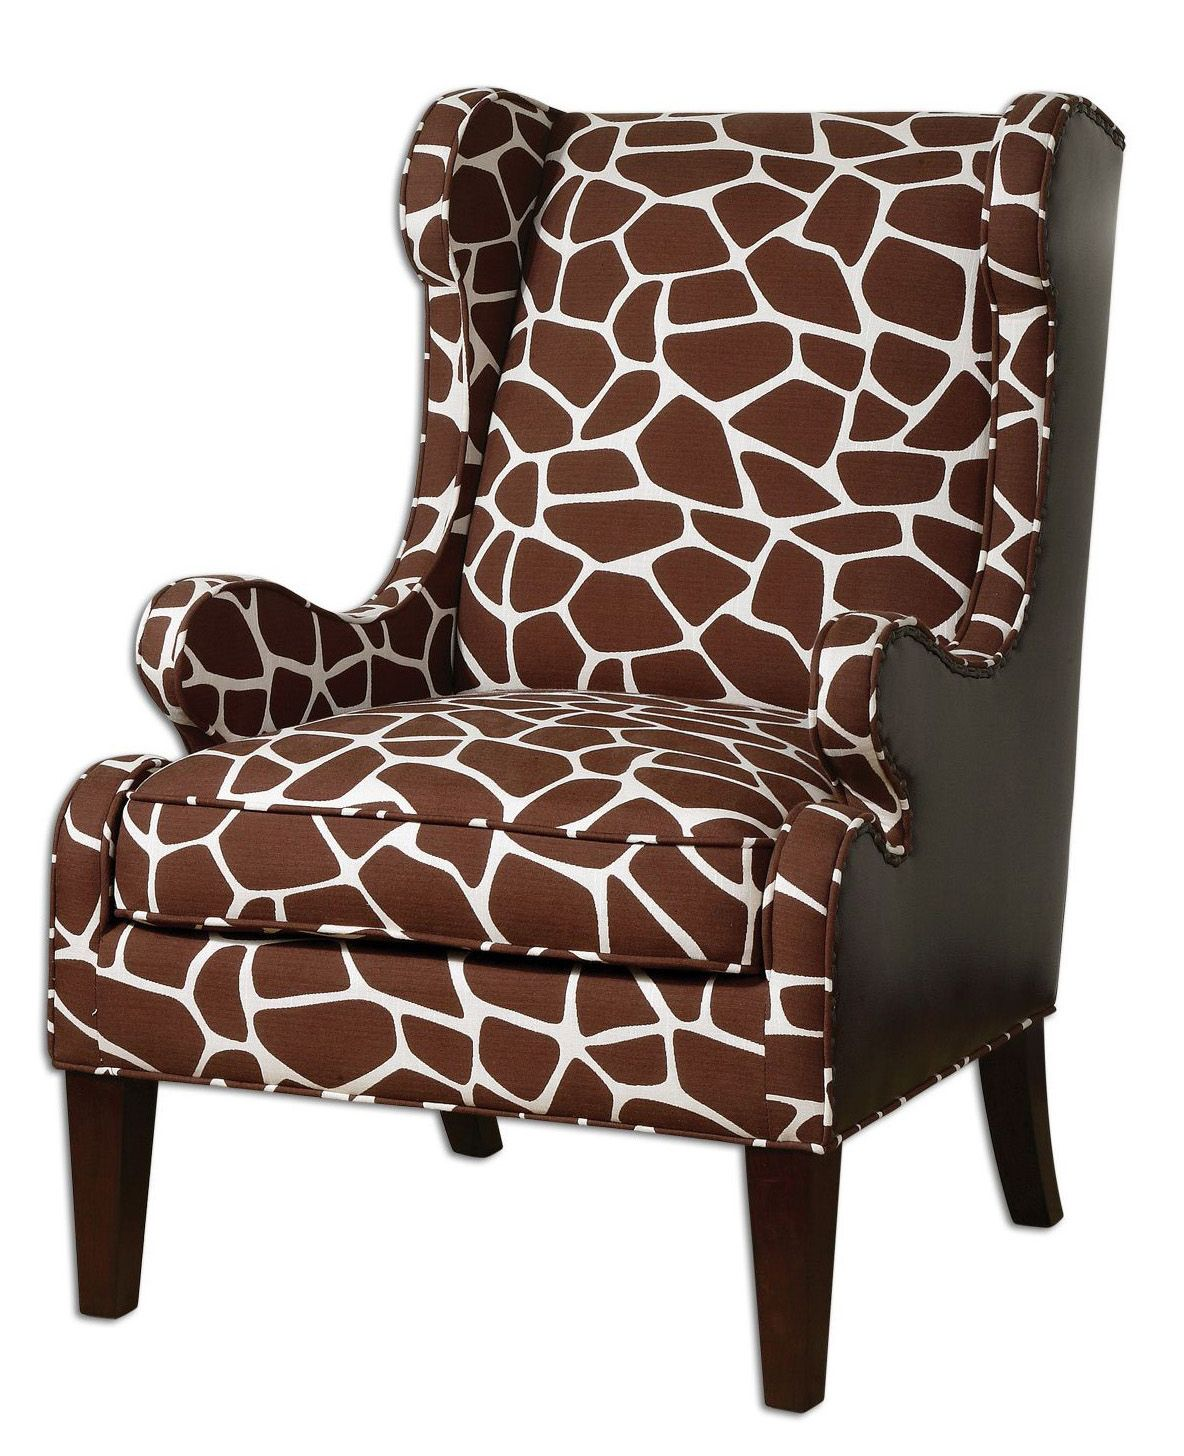 Giraffe Print Armchair No Way Too Bad It S Over 1000